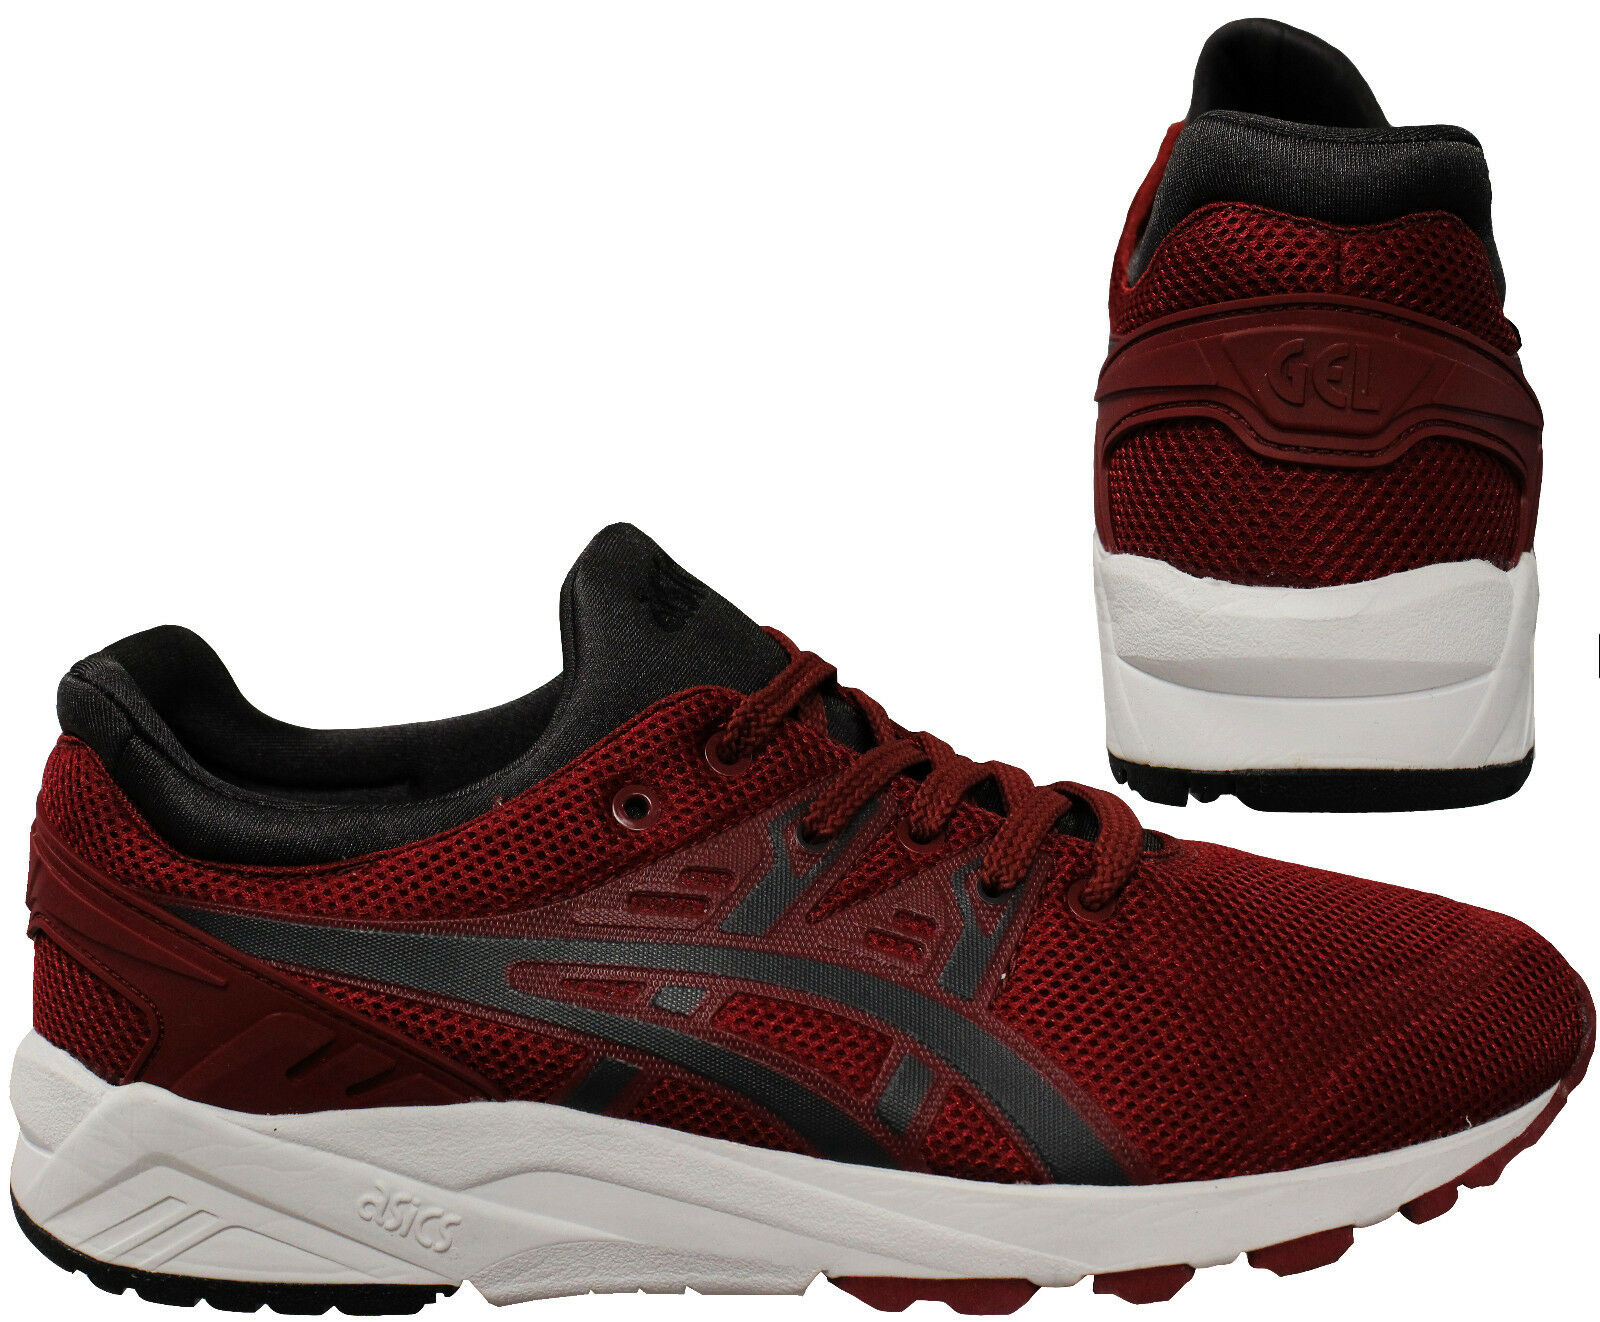 Asics Gel Kayano Mens Lace Up Running schuhe Burgundy Trainers H5Y3N 2516 D86